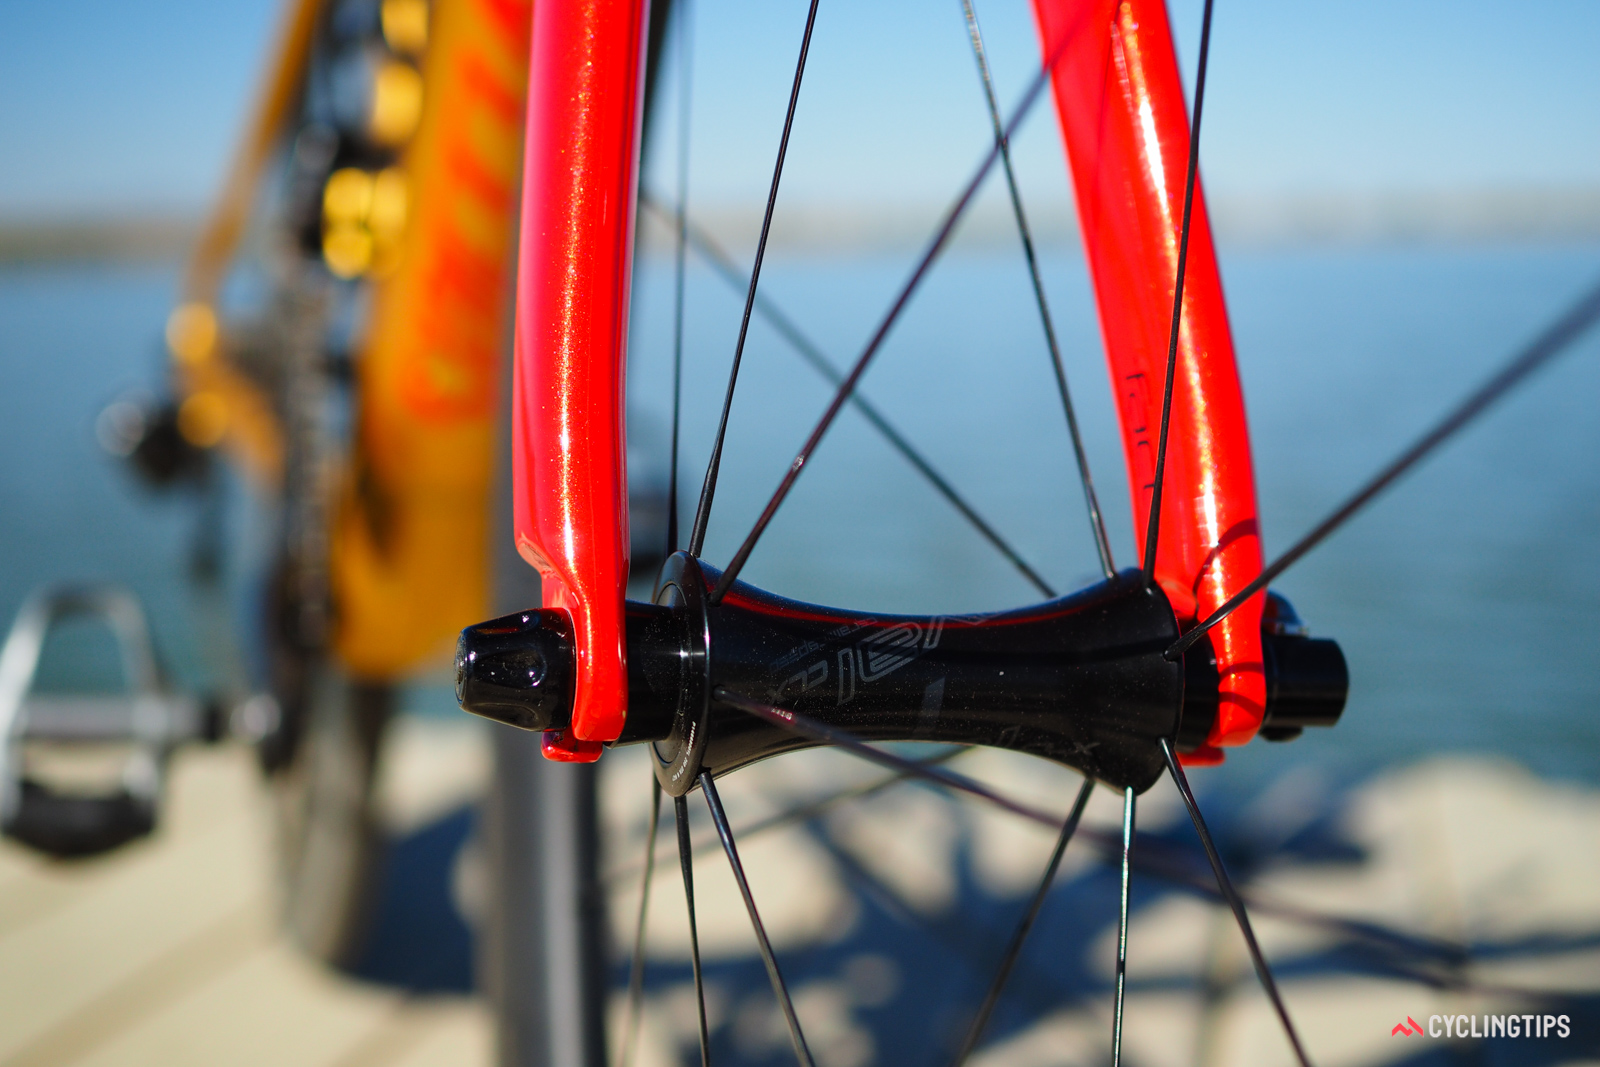 The shape of the Roval hubs was penned by Specialized industrial designer Brian Szykowny, who also painted a round of track-prepped Allez DSW SL frames for a round of the Red Hook Criterium.